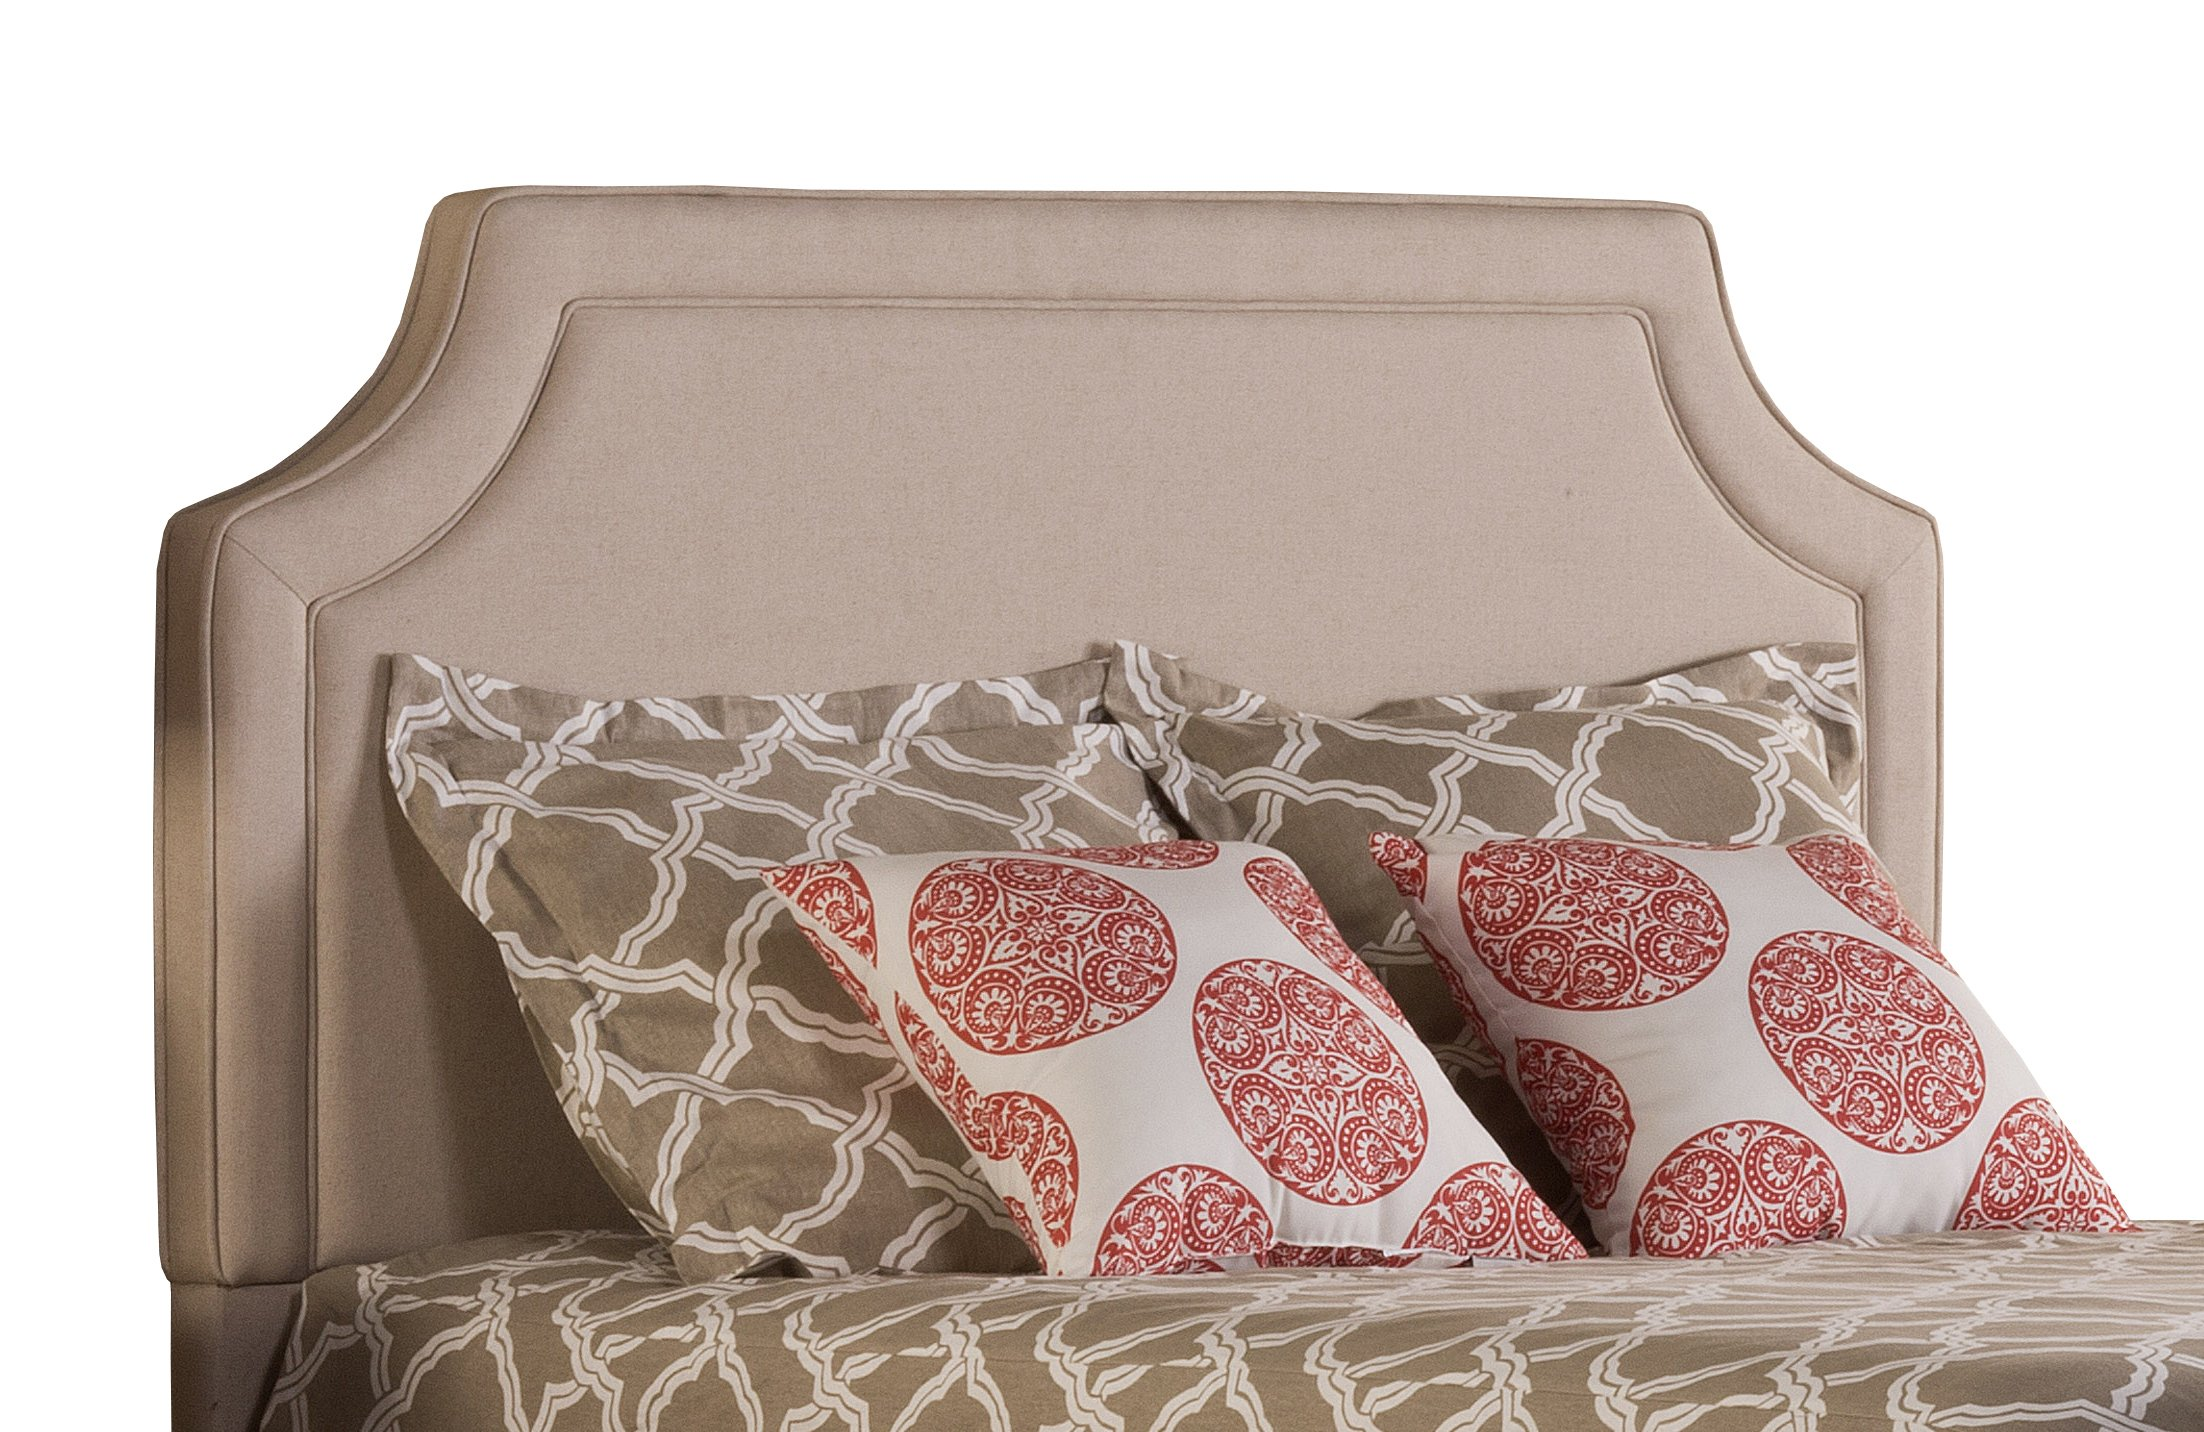 Hillsdale 1322-670 Parker Upholstered Headboard without Frame,King, Linen Stone